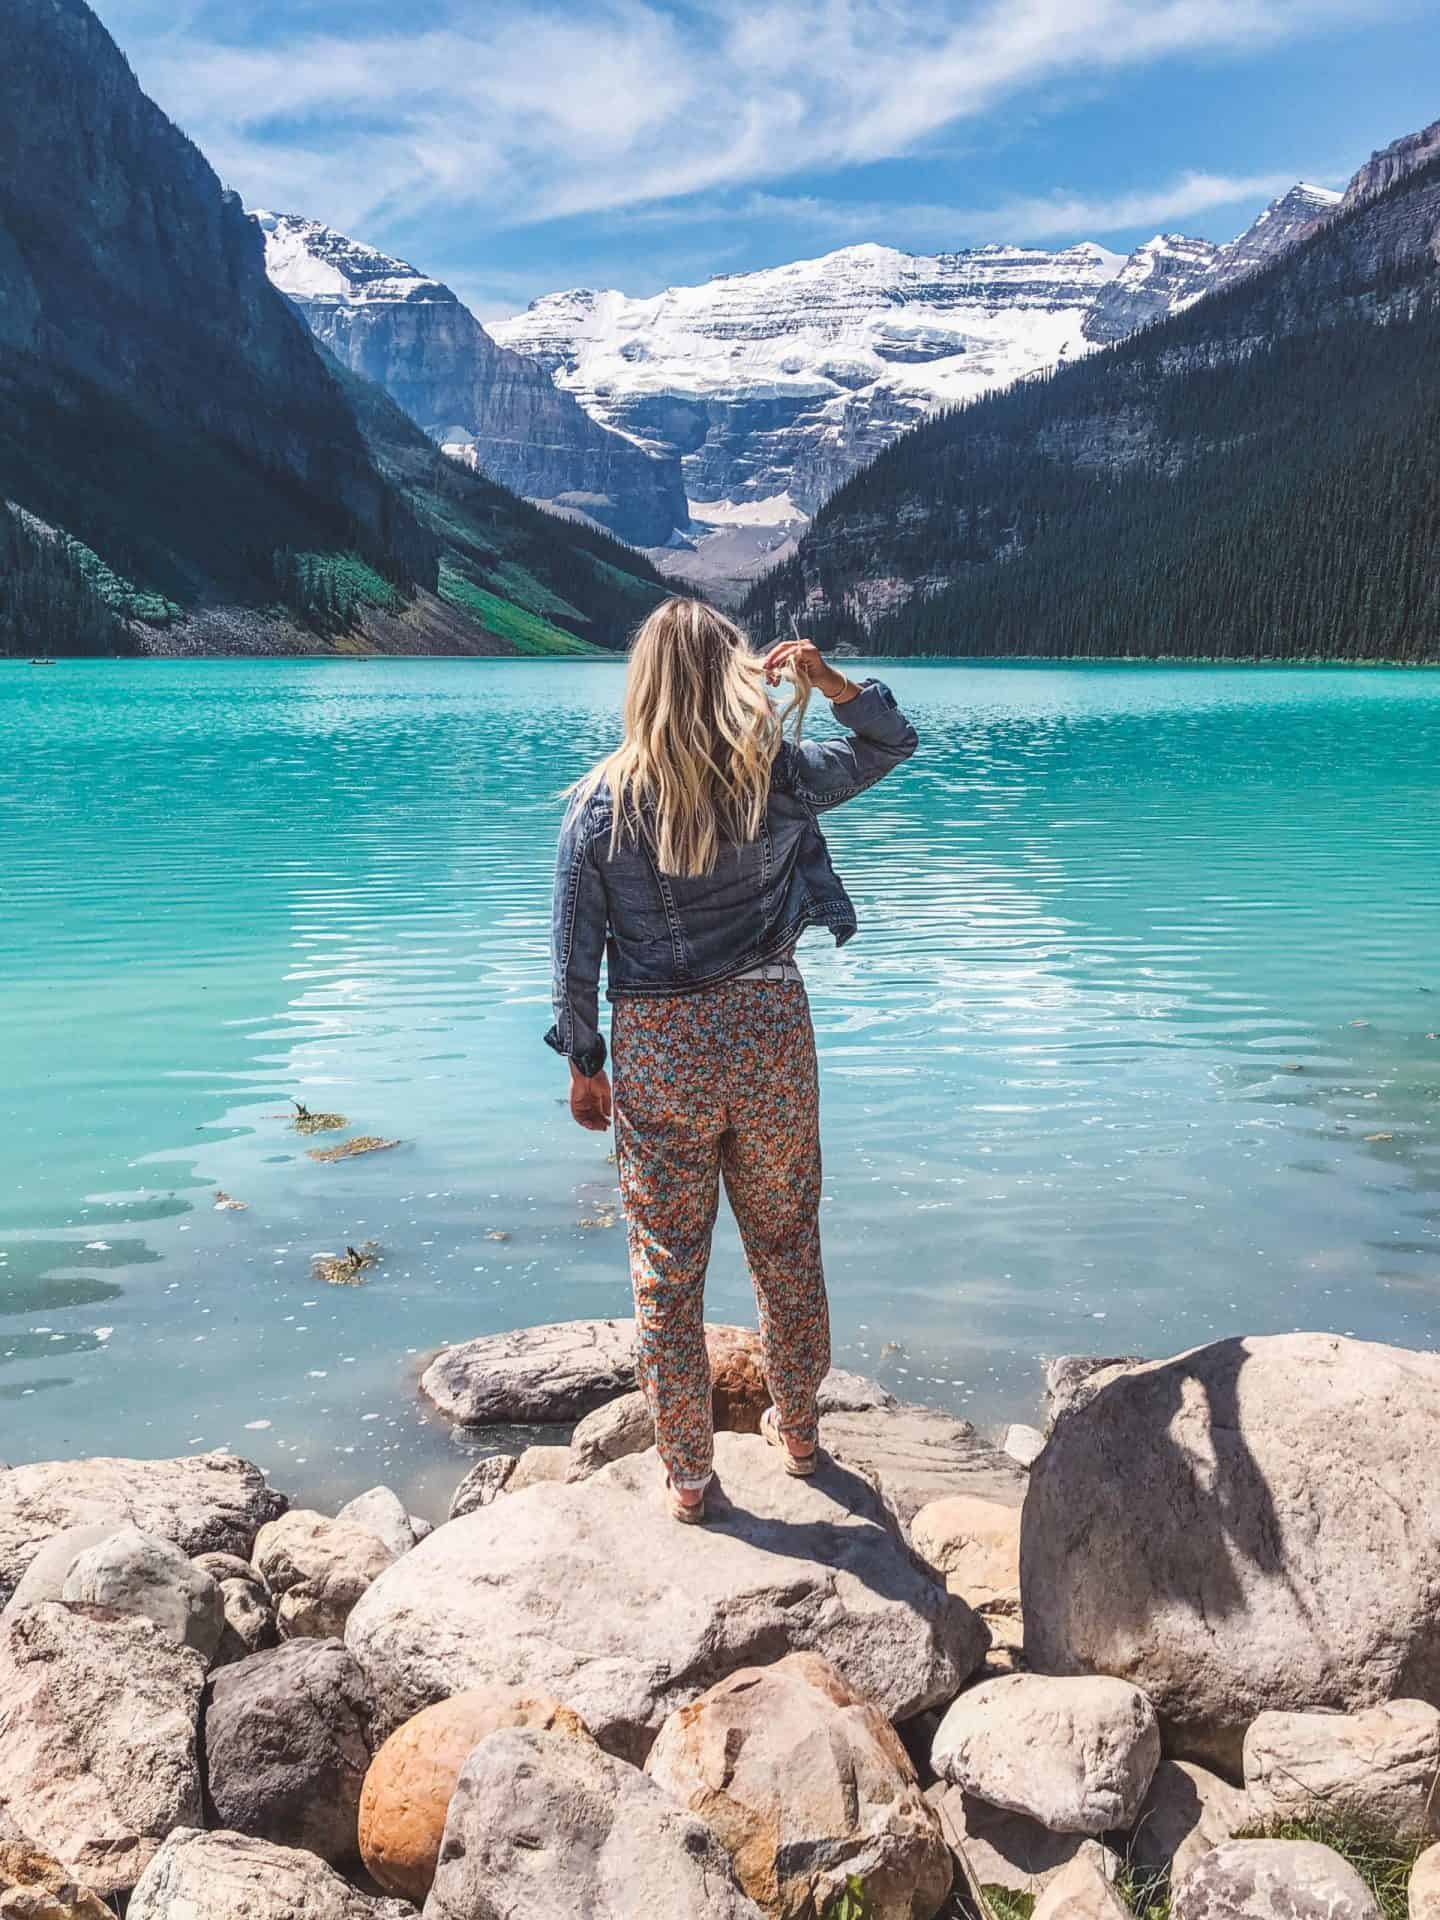 girl standing in front of icy blue lake